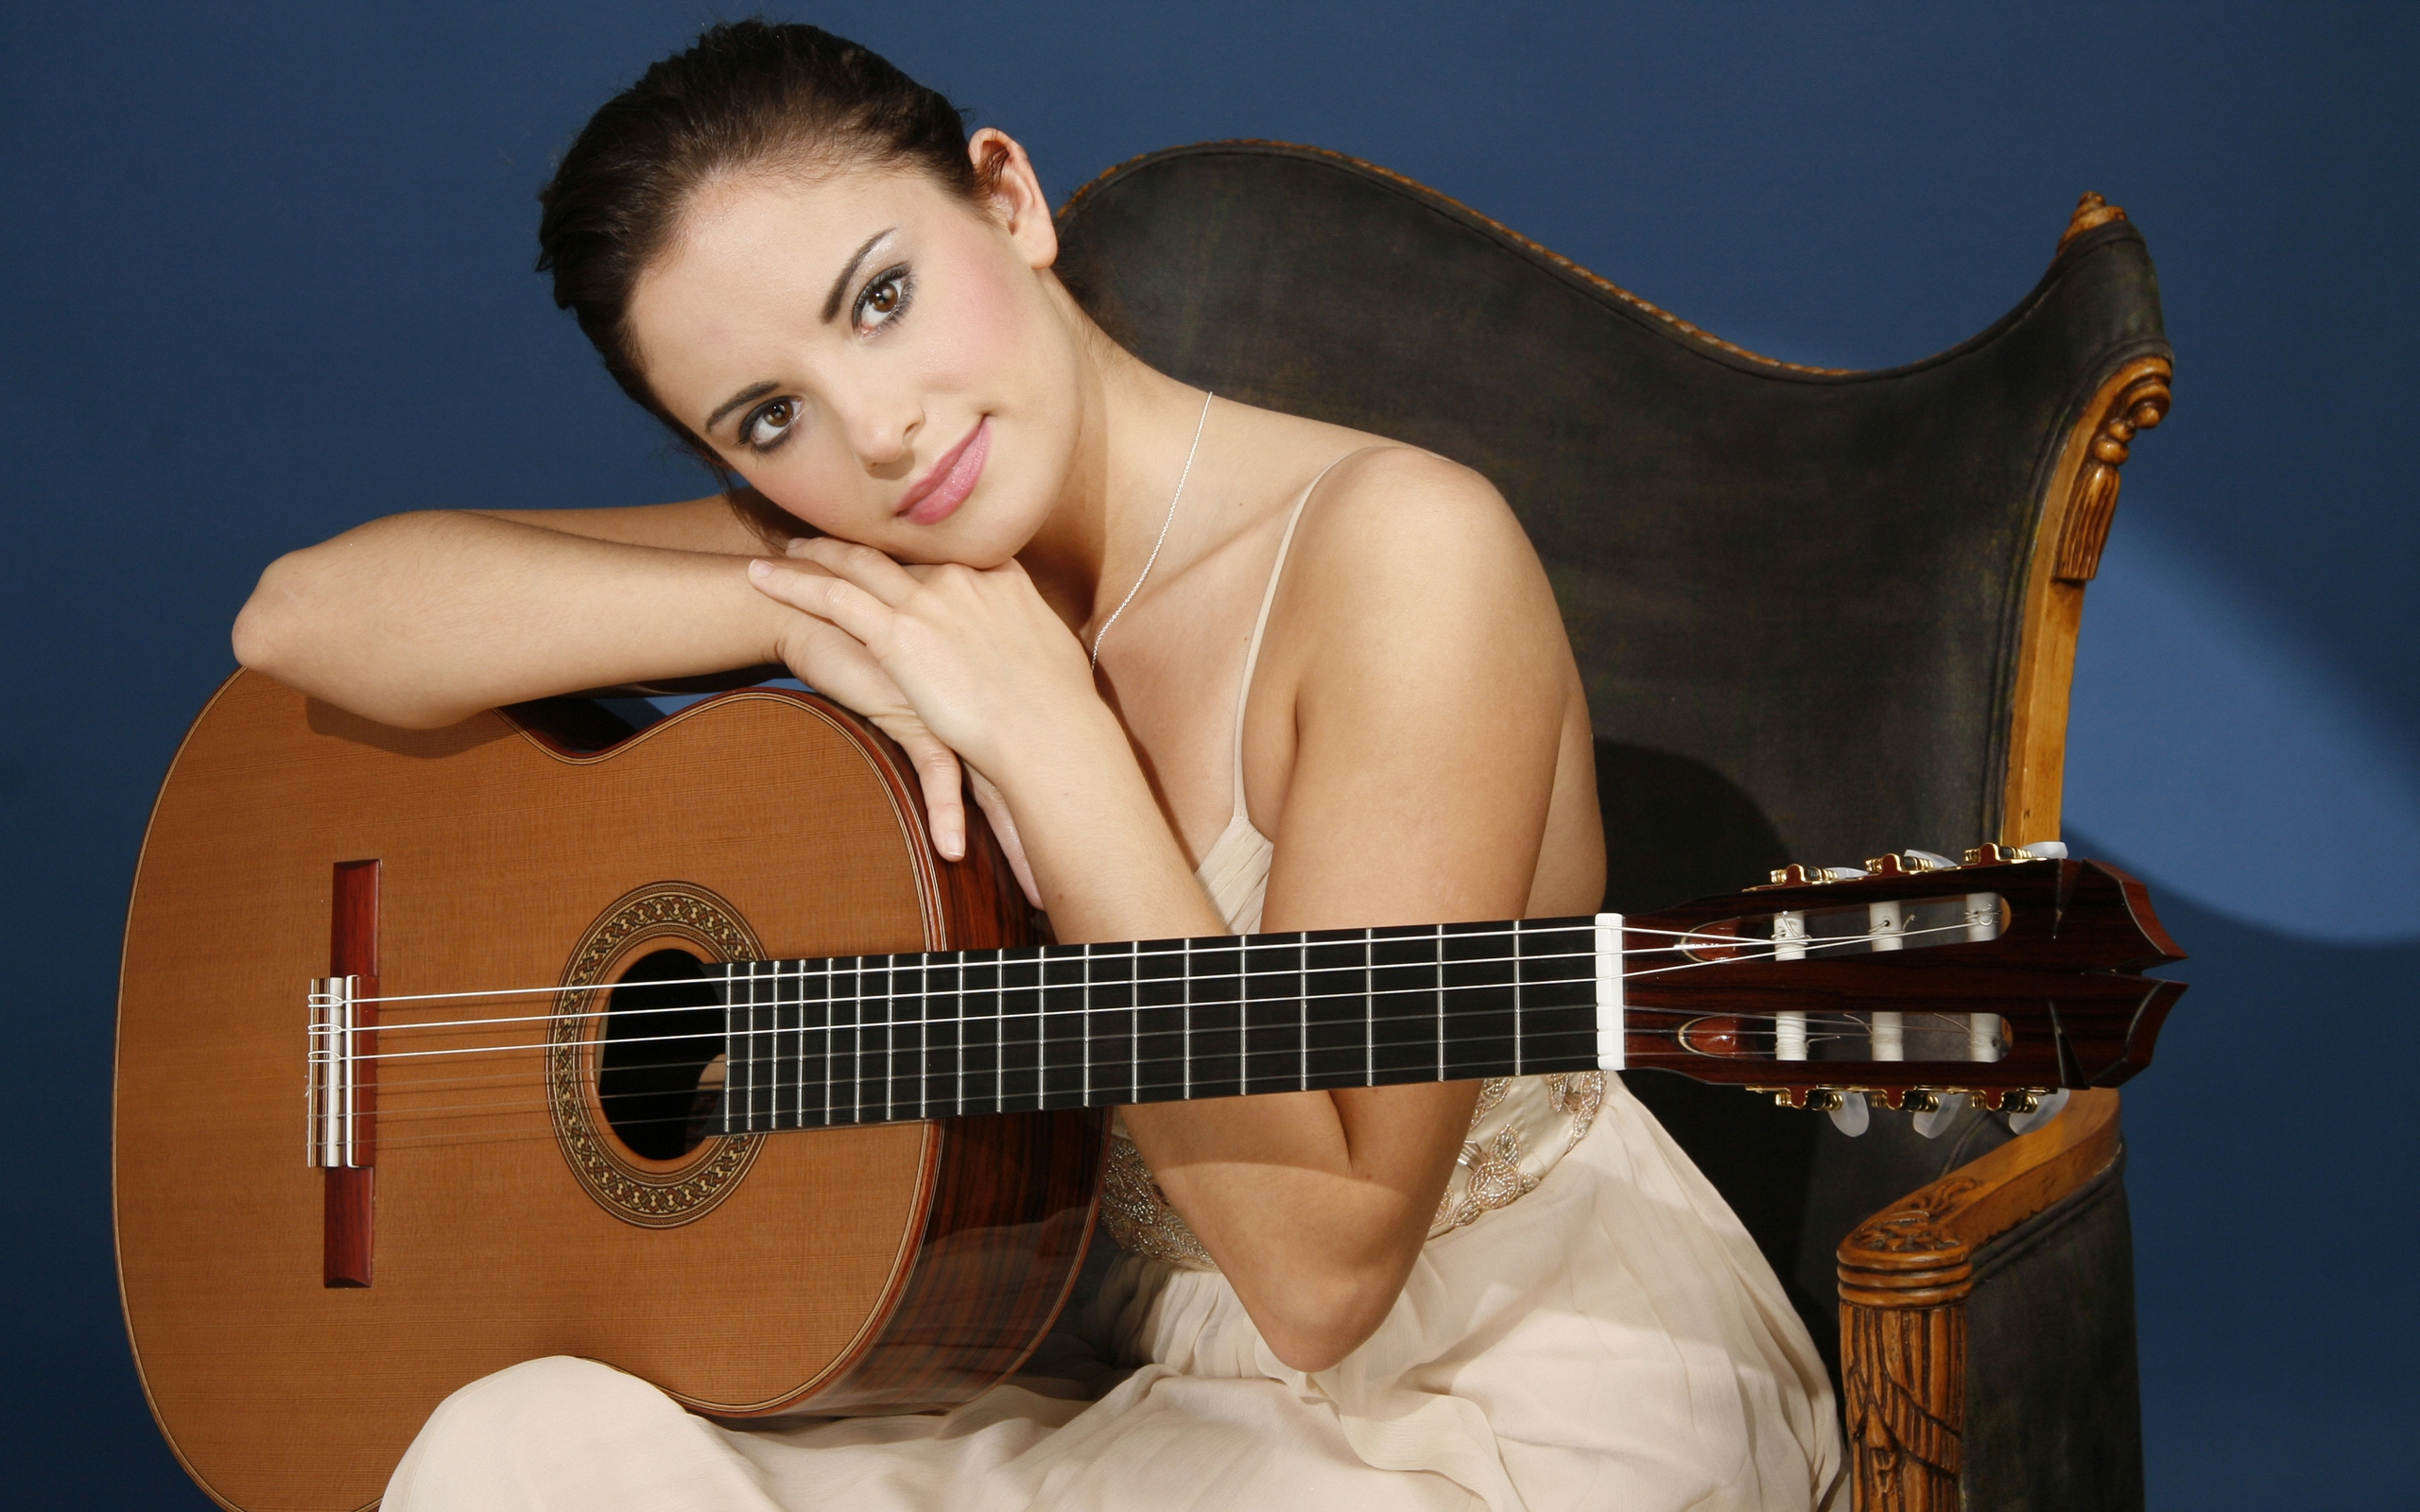 Ana Vidovic Guitar for 2560 x 1600 widescreen resolution